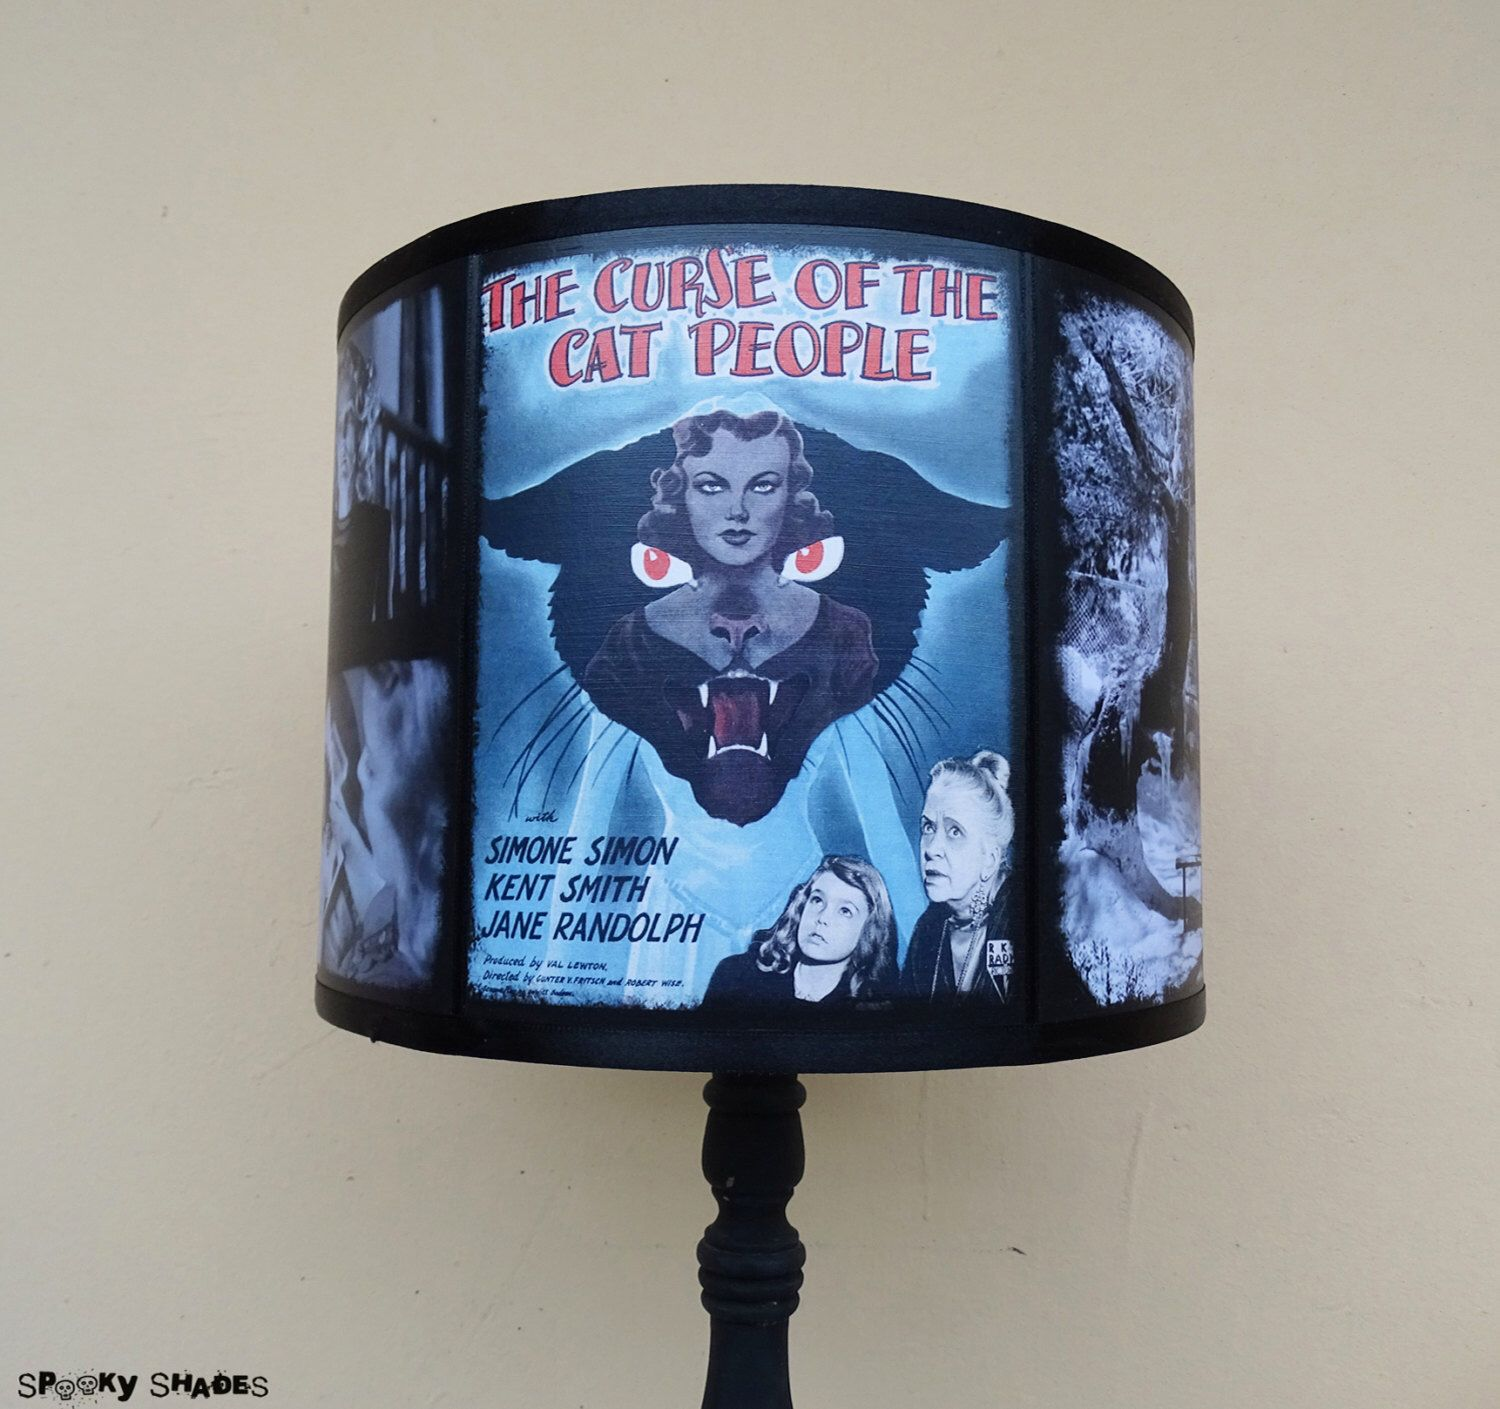 The curse of the cat people lamp shade lampshade halloween the curse of the cat people lamp shade lampshade halloween lighting classic horror aloadofball Images